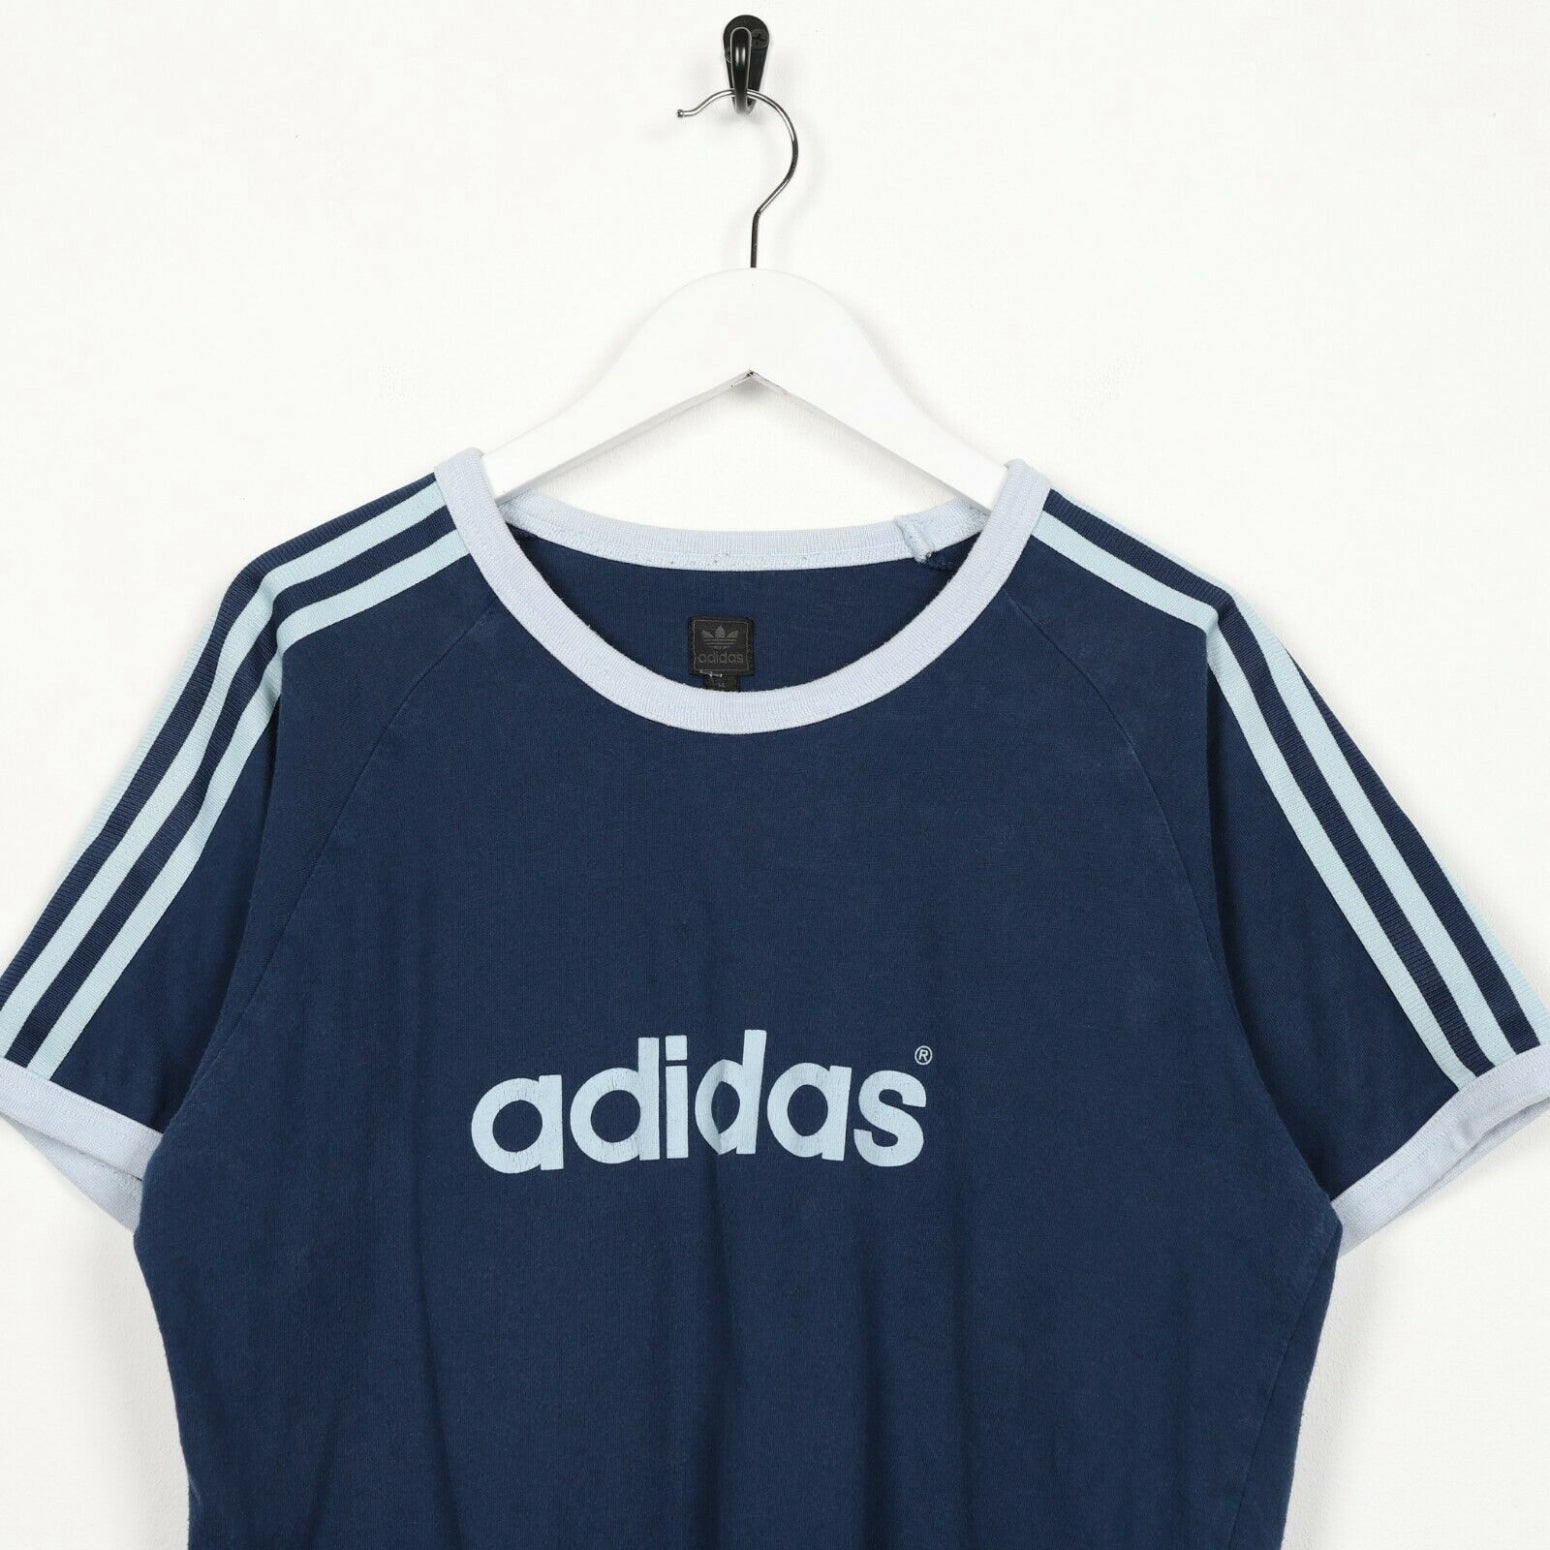 Vintage ADIDAS ORIGINALS Spell Out T Shirt Tee Blue Medium M